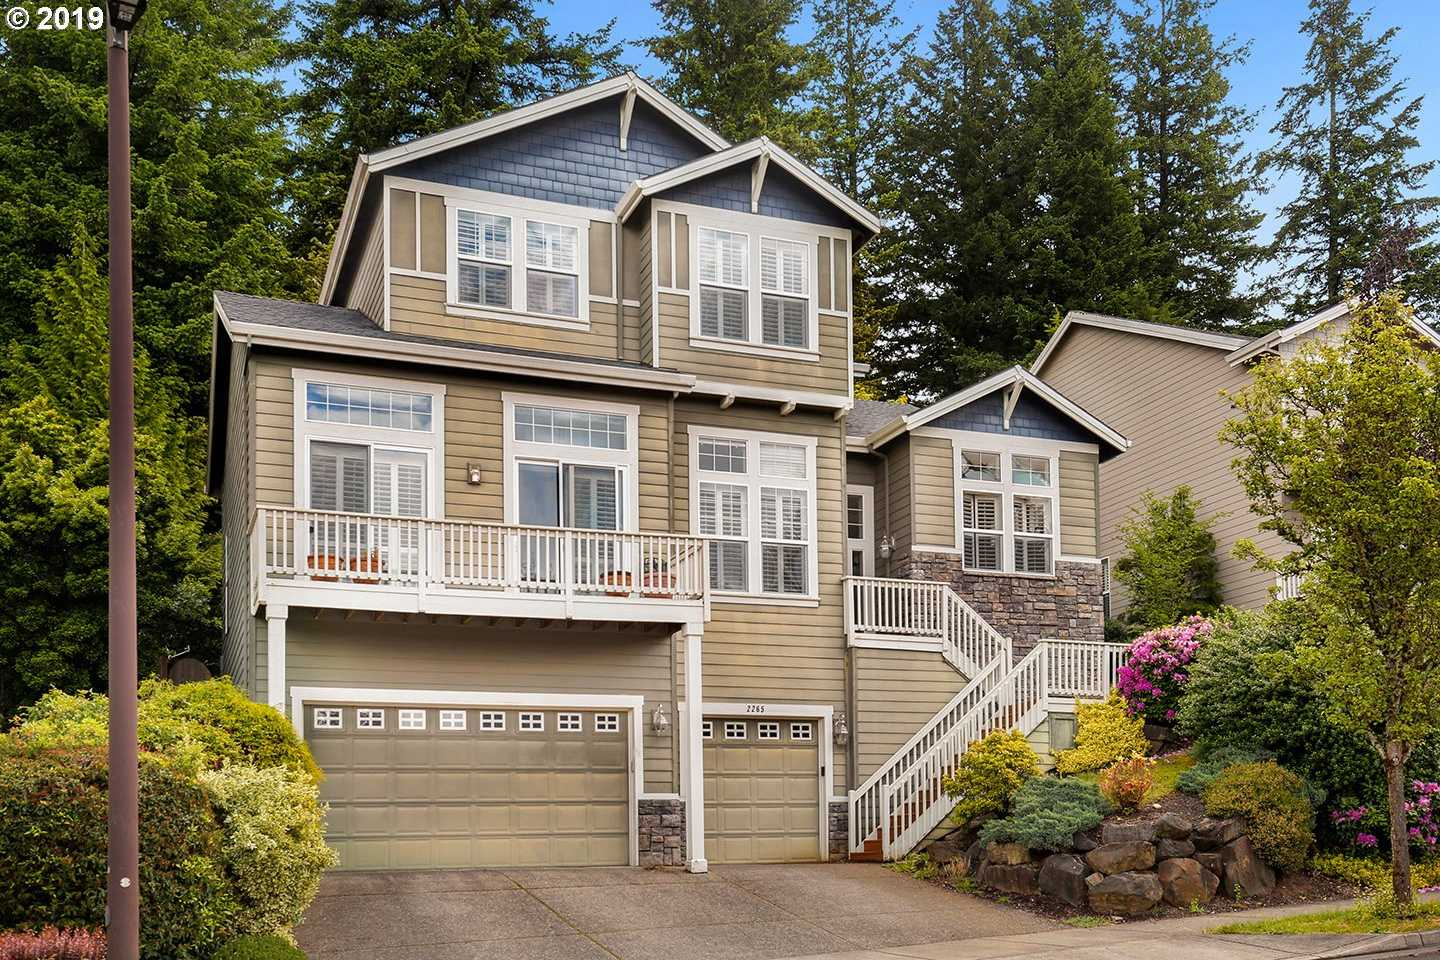 $599,000 - 4Br/3Ba -  for Sale in West Linn